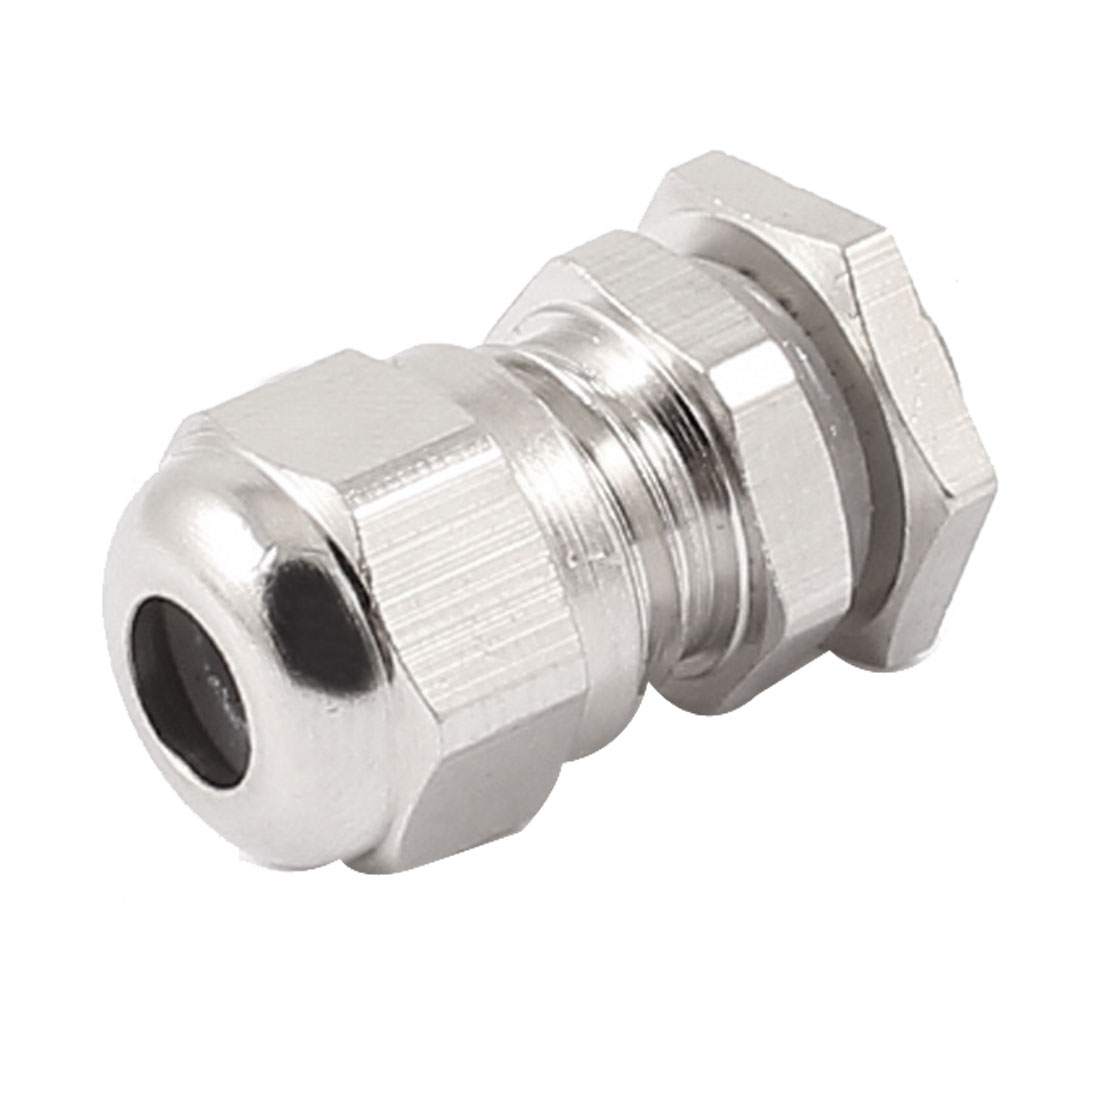 M8x1 2-5mm Dia Wire 10mm OD Thread Metal Waterproof Connector Fastener Locknut Stuffing Cable Gland